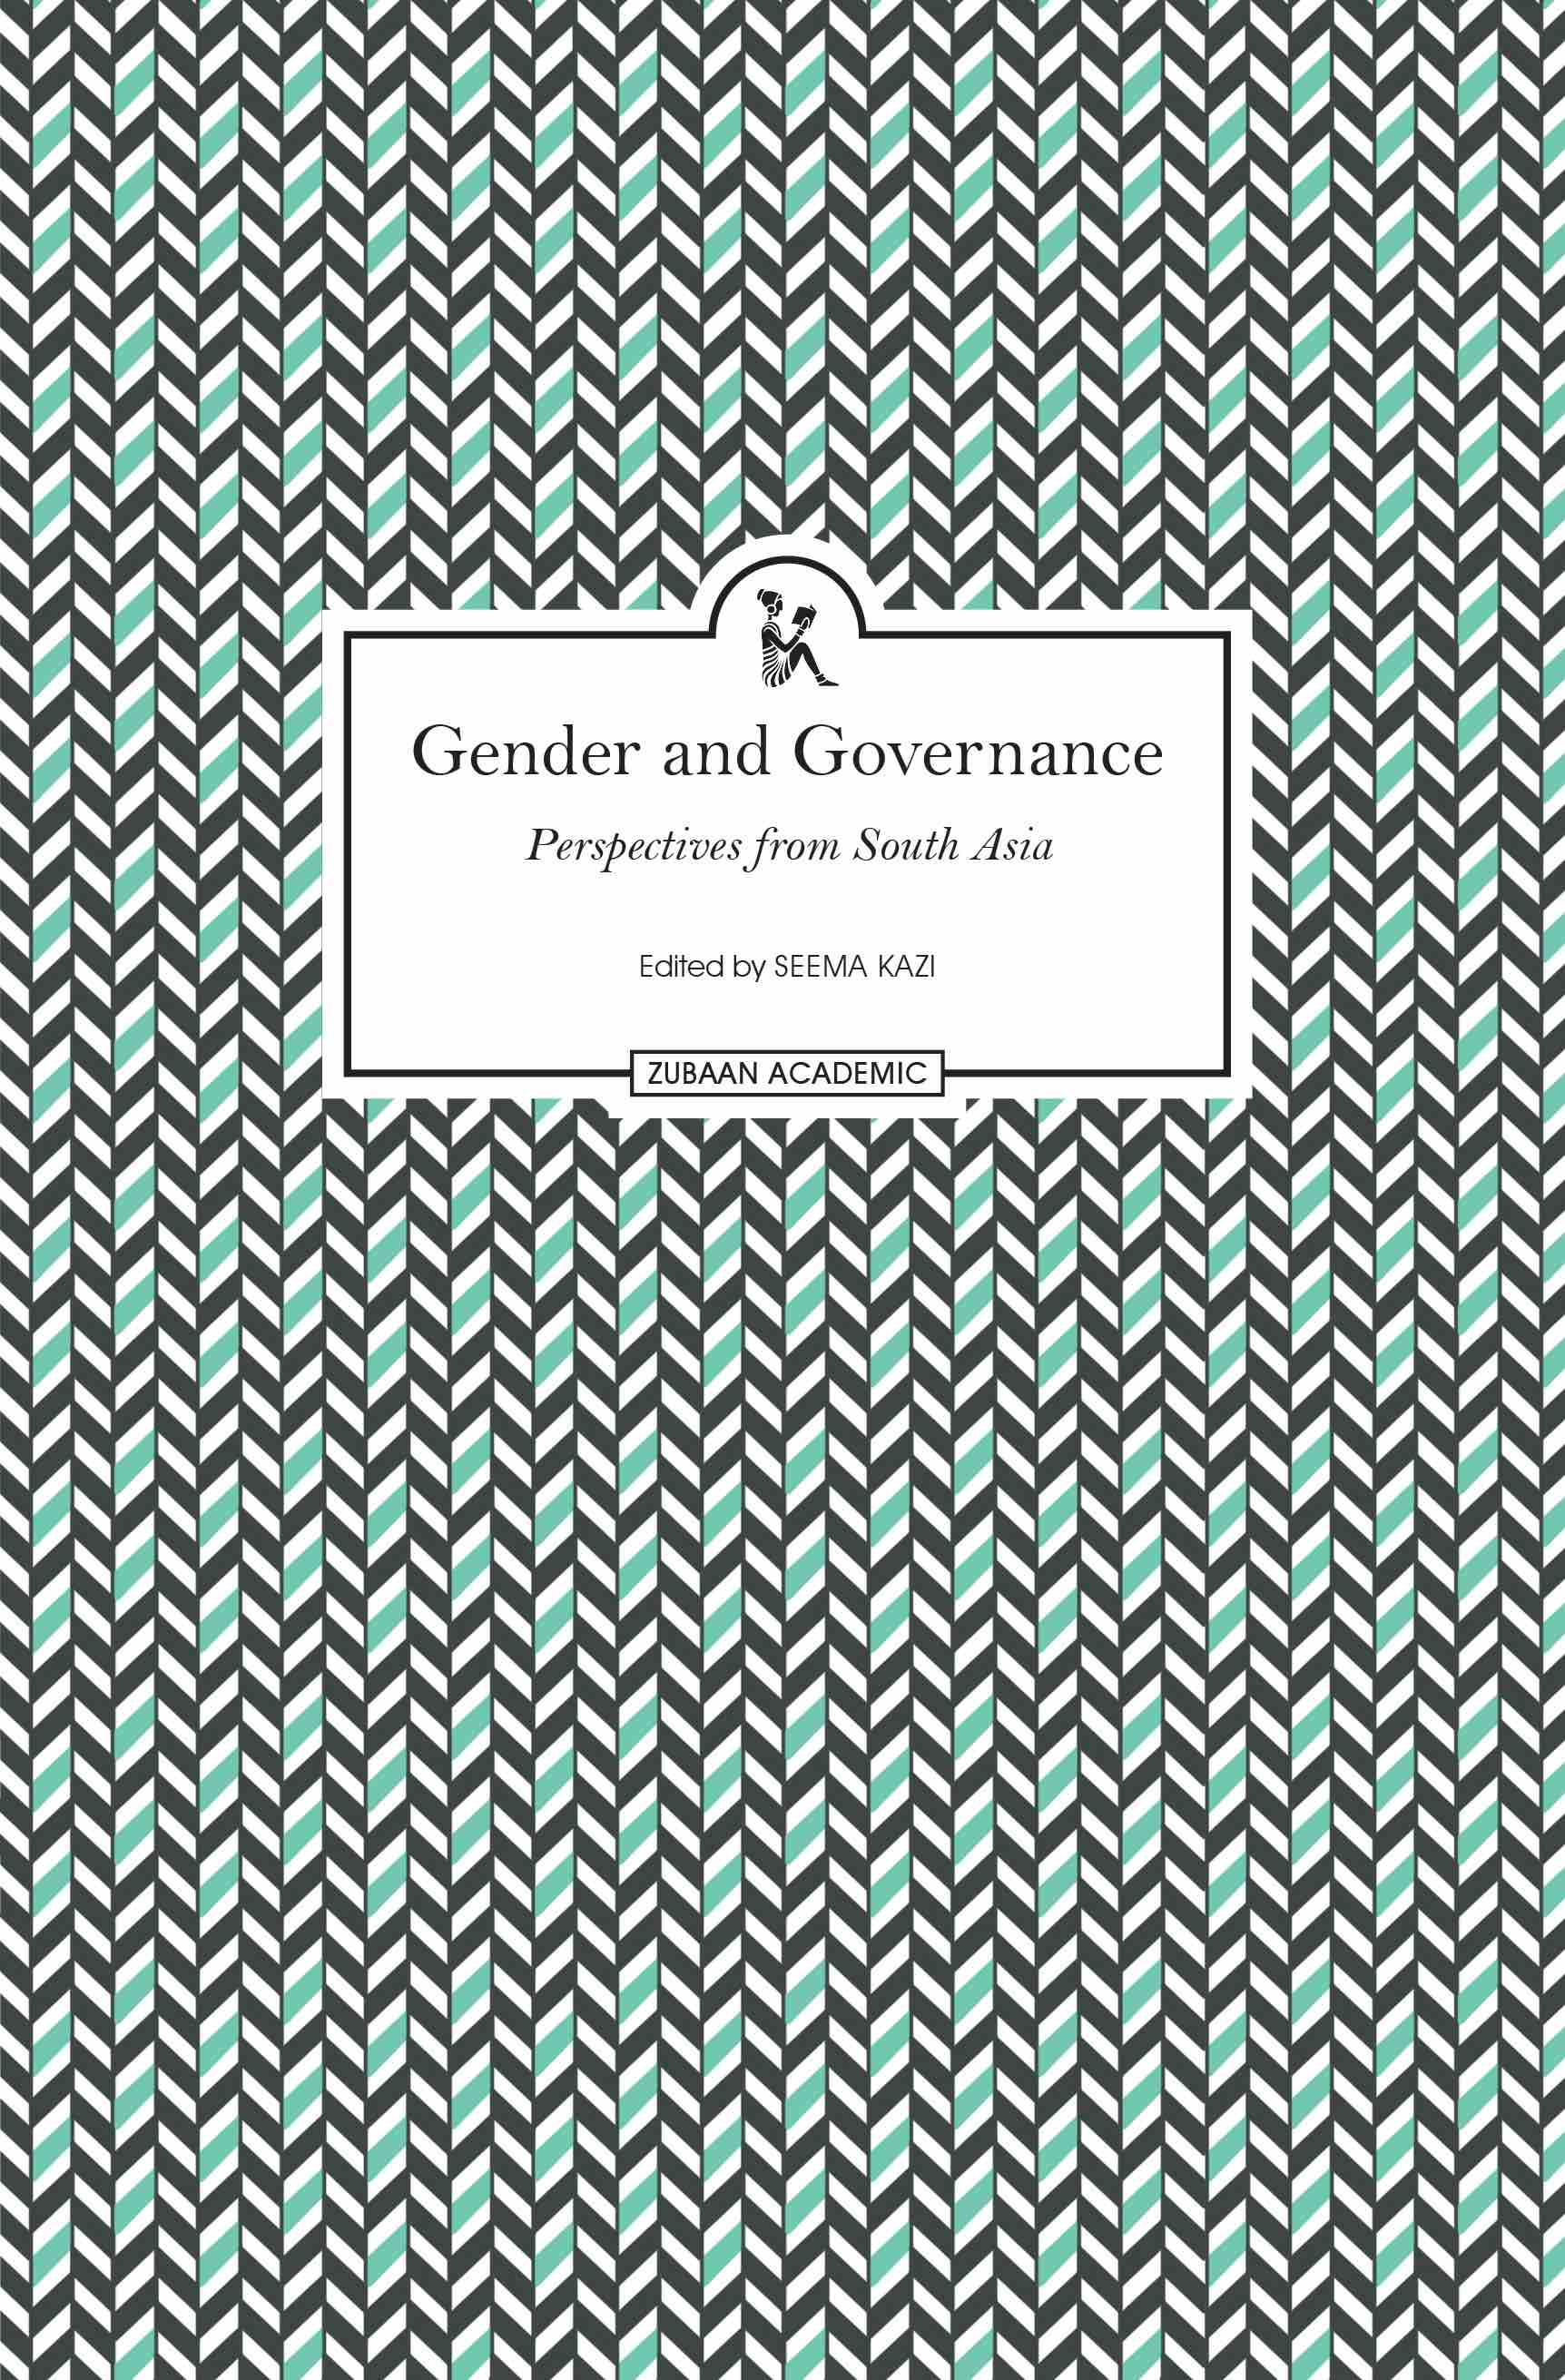 Gender and Governance: Perspectives from South Asia